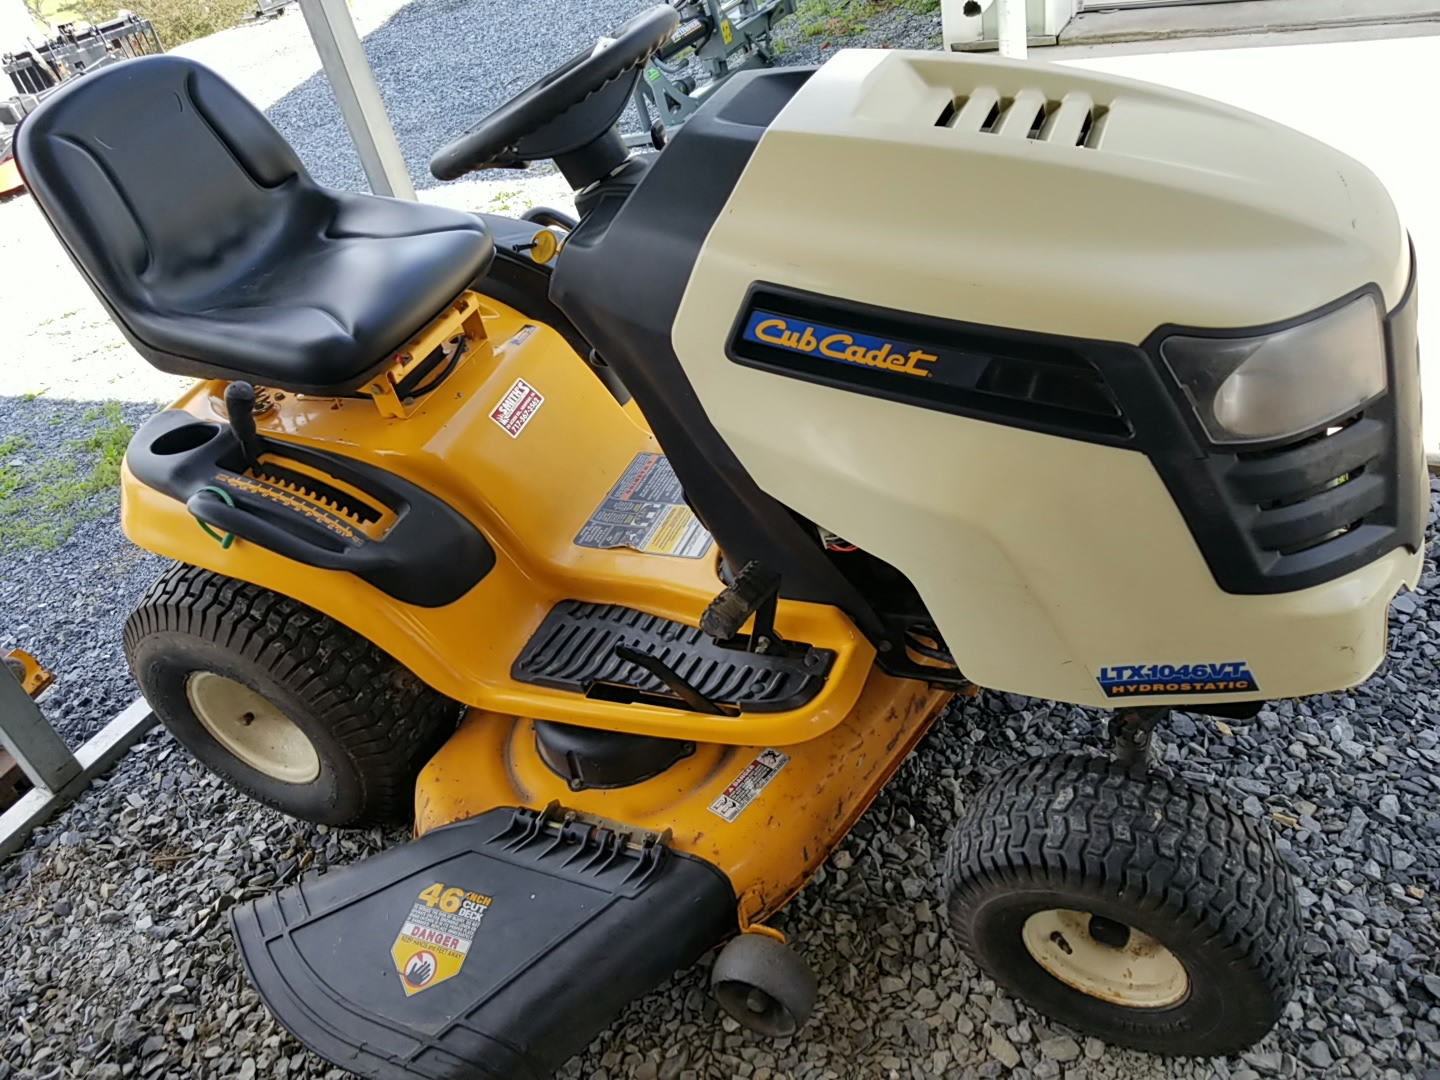 2010 Cub Cadet Ltx 1046 Vt Riding Lawn Tractor For Sale In Loysville Pa Nolt S Power Equipment Llc Perry Power Equipment